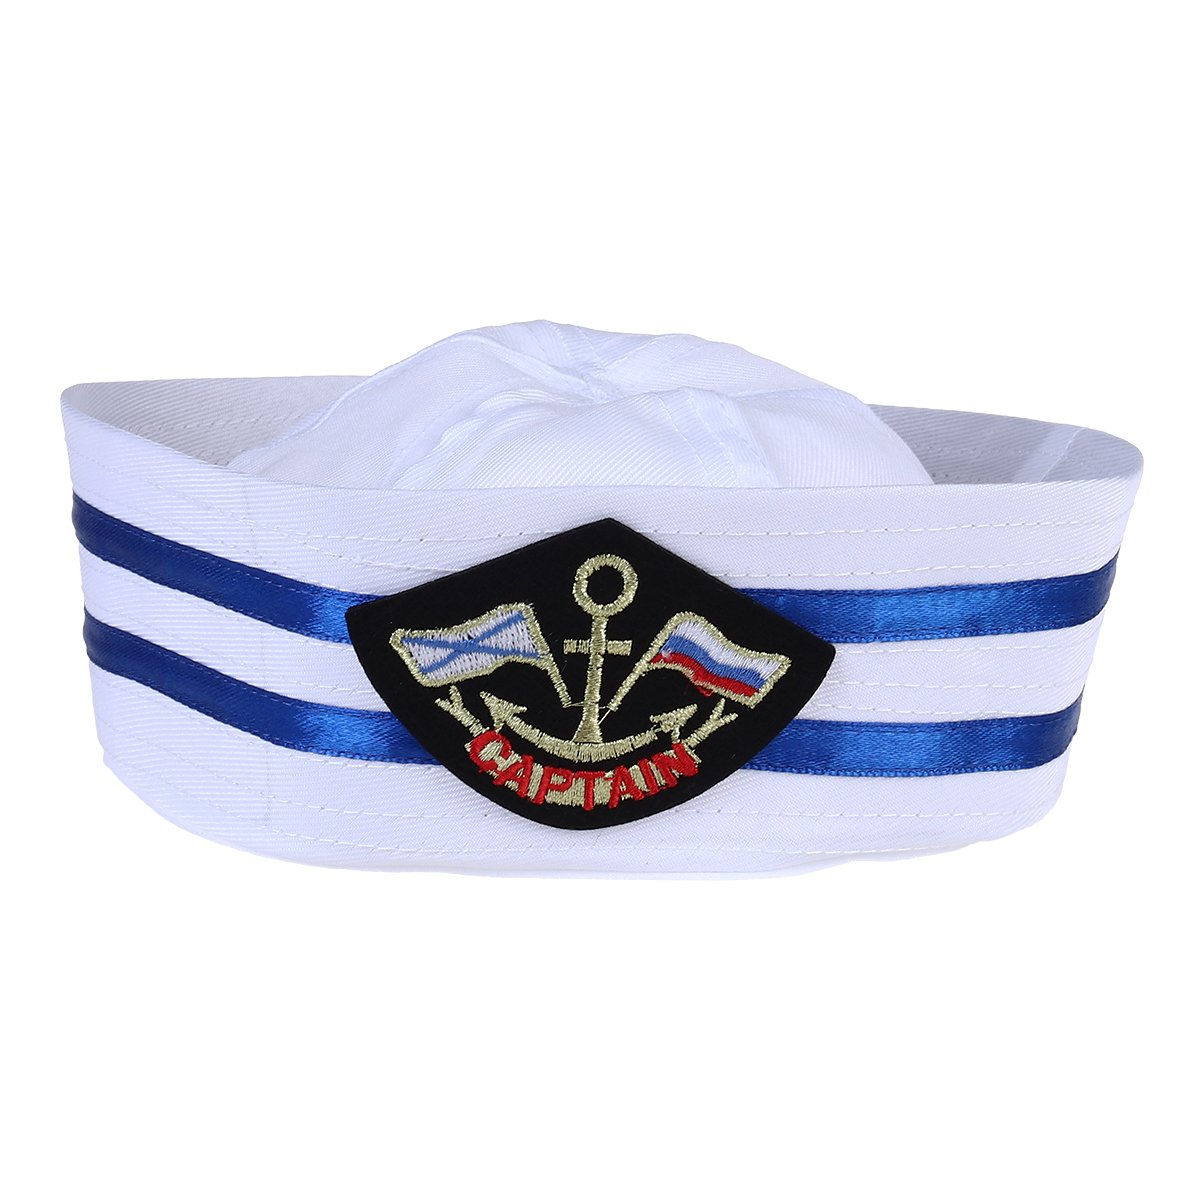 Hippie Hats,  70s Hats BESTOYARD Captain Hat Cap Sailor Hat Skipper Navy Marine Cap Kids Yacht Cap Hat For Costume Accessory 58CM $7.98 AT vintagedancer.com